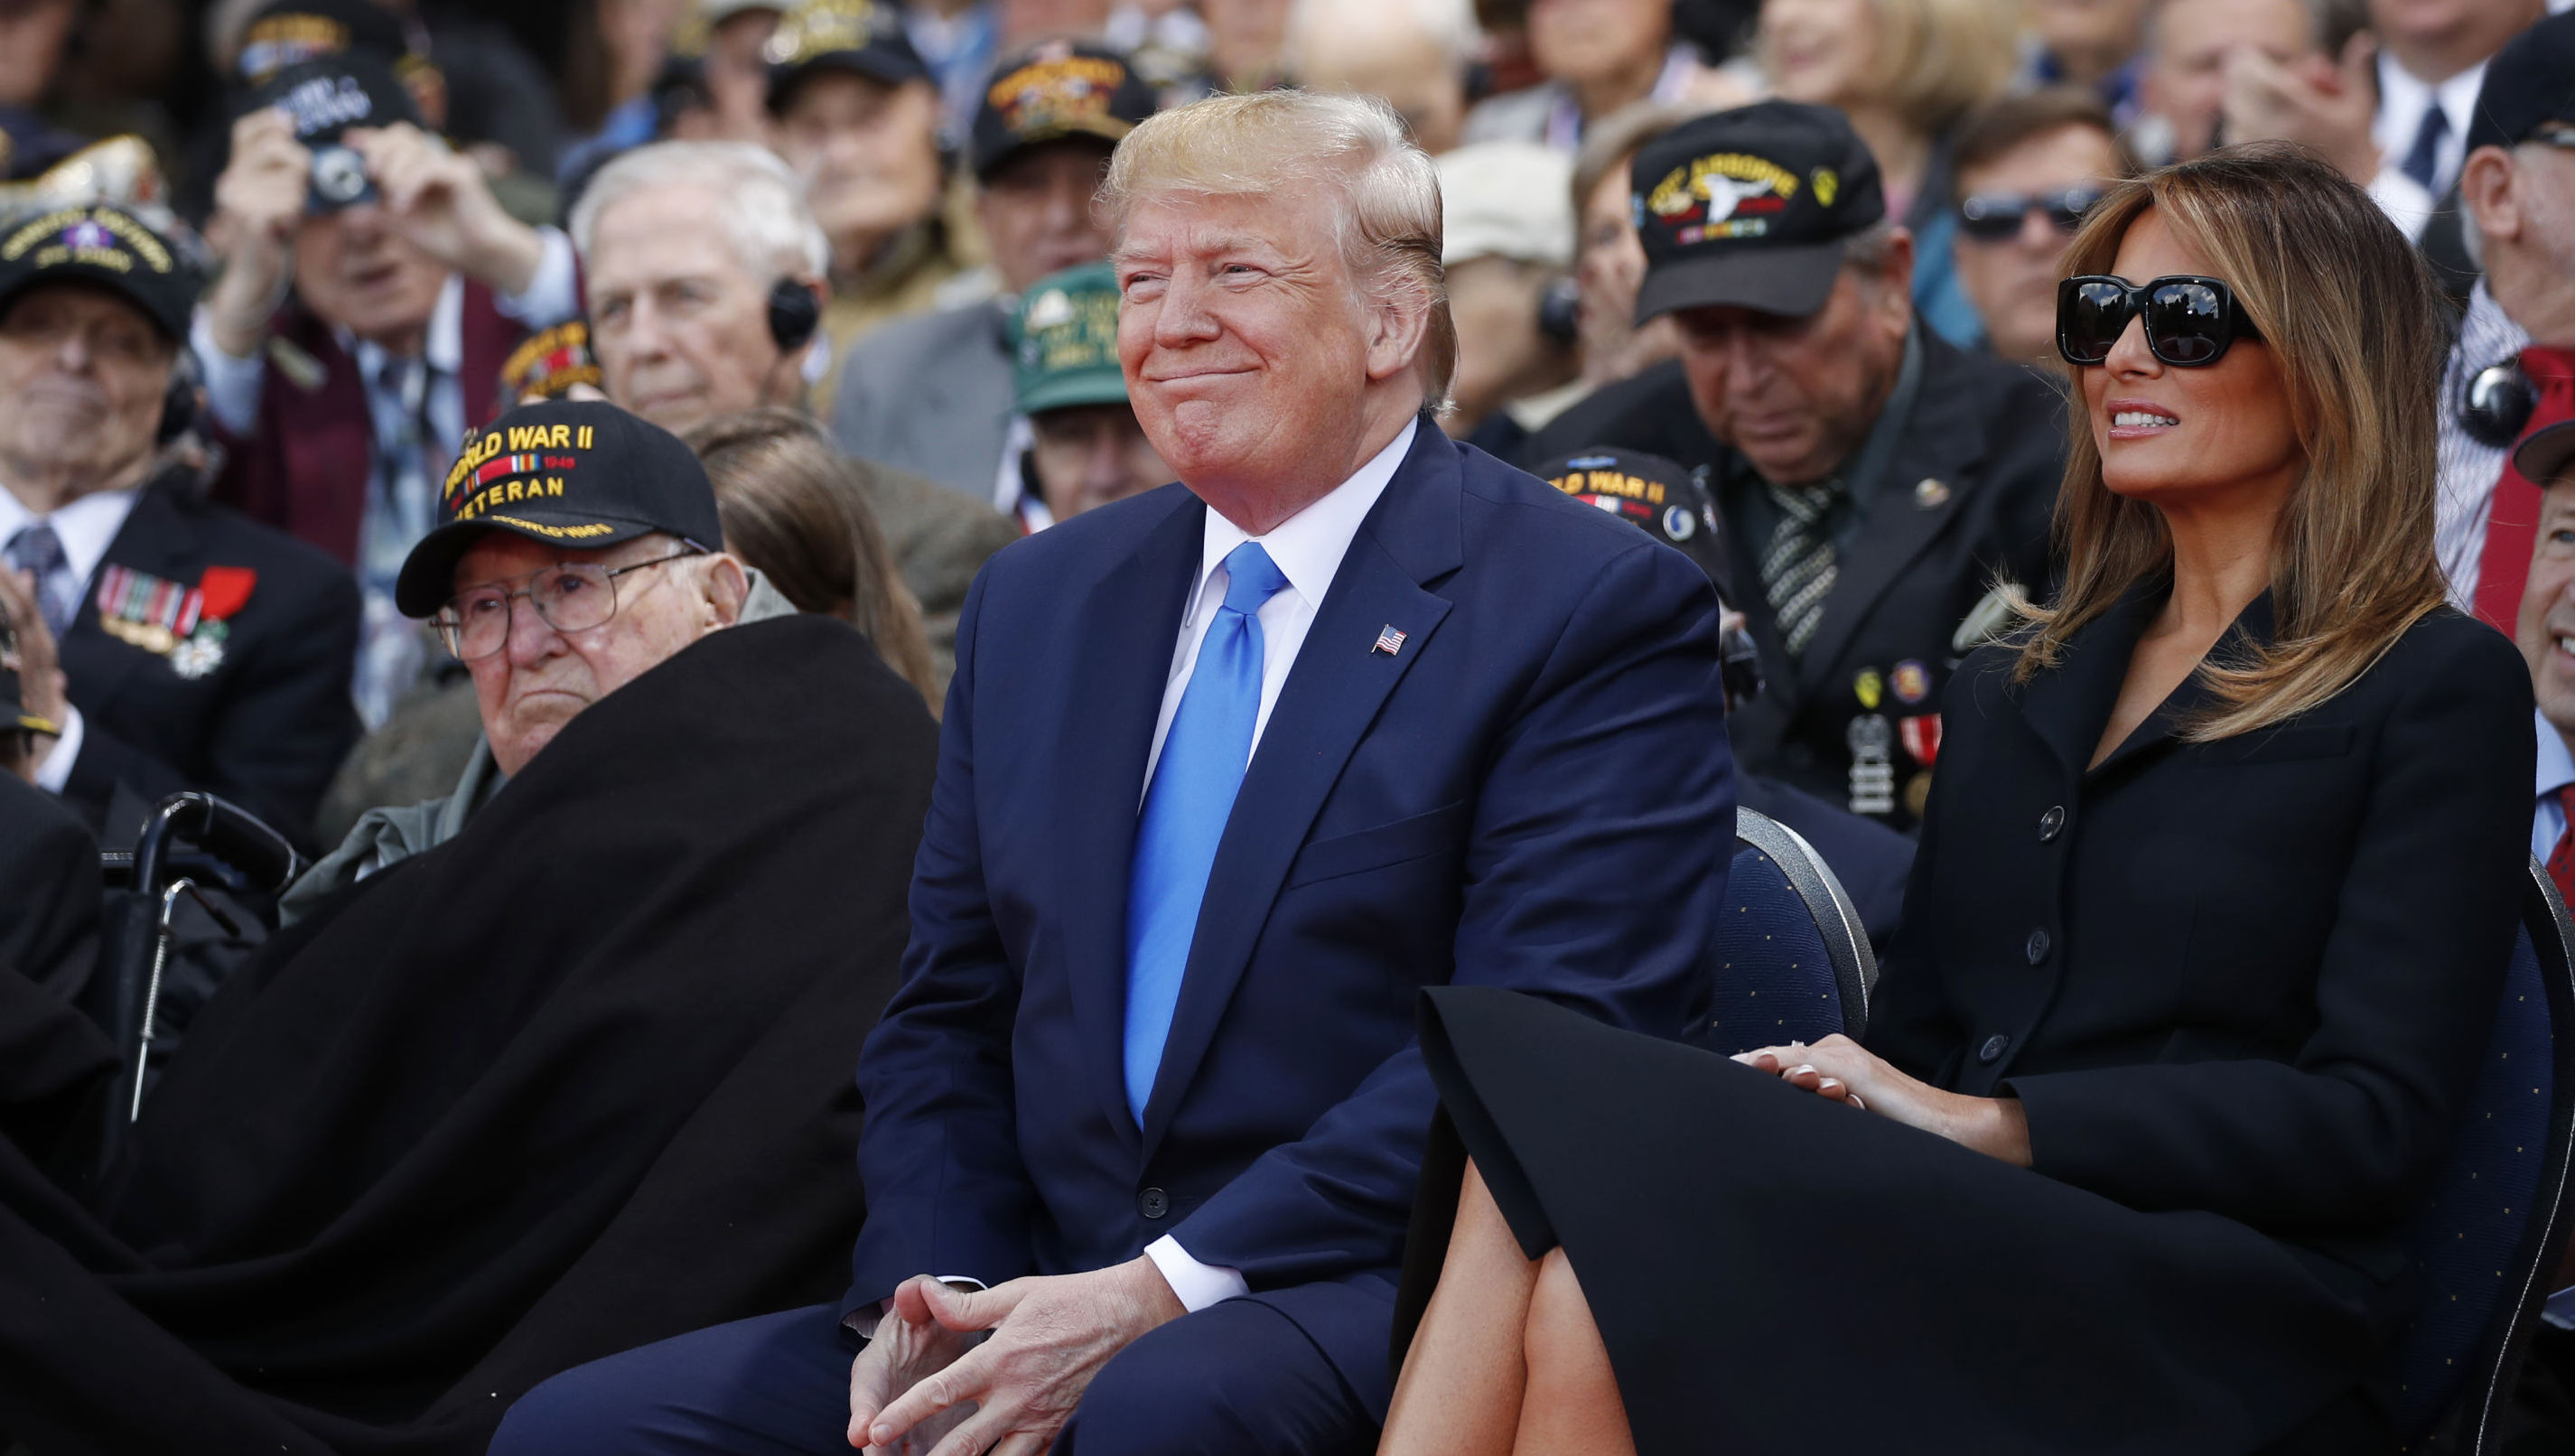 President Donald Trump and first lady Melania Trump, participate in a ceremony to commemorate the 75th anniversary of D-Day at the American Normandy cemetery, Thursday, June 6, 2019, in Colleville-sur-Mer, Normandy, France.